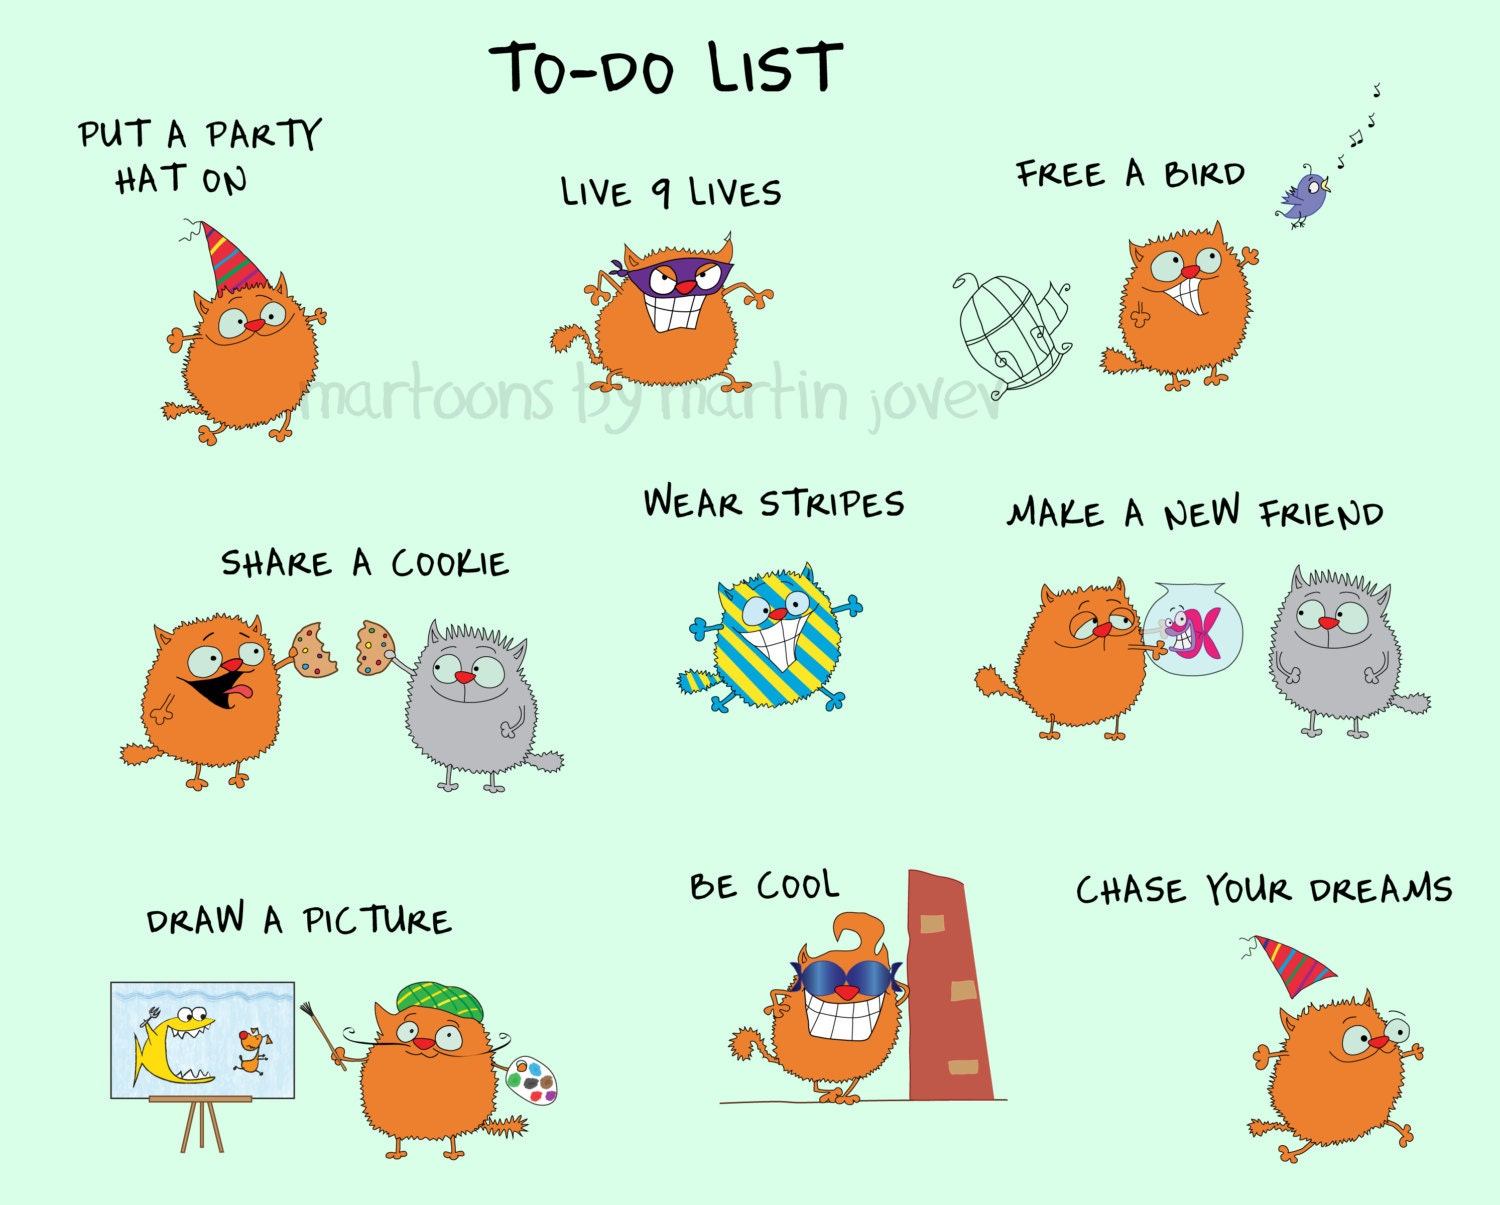 Funny Orange Cats 2014 New Year Resolution or To-Do List Party Be Cool ...